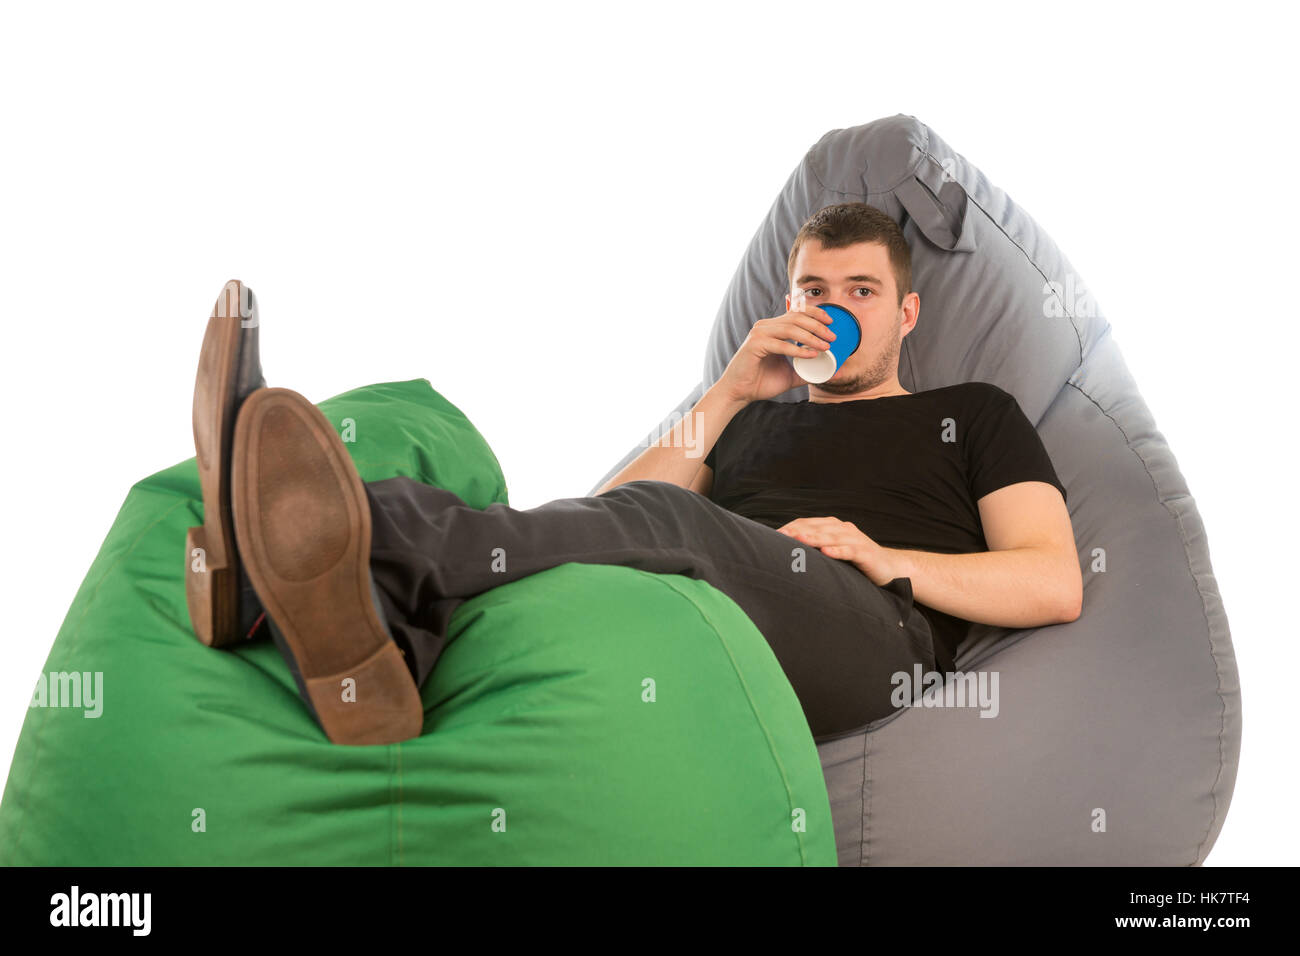 Young man lying on beanbag chairs and drinking coffee isolated on white background - Stock Image